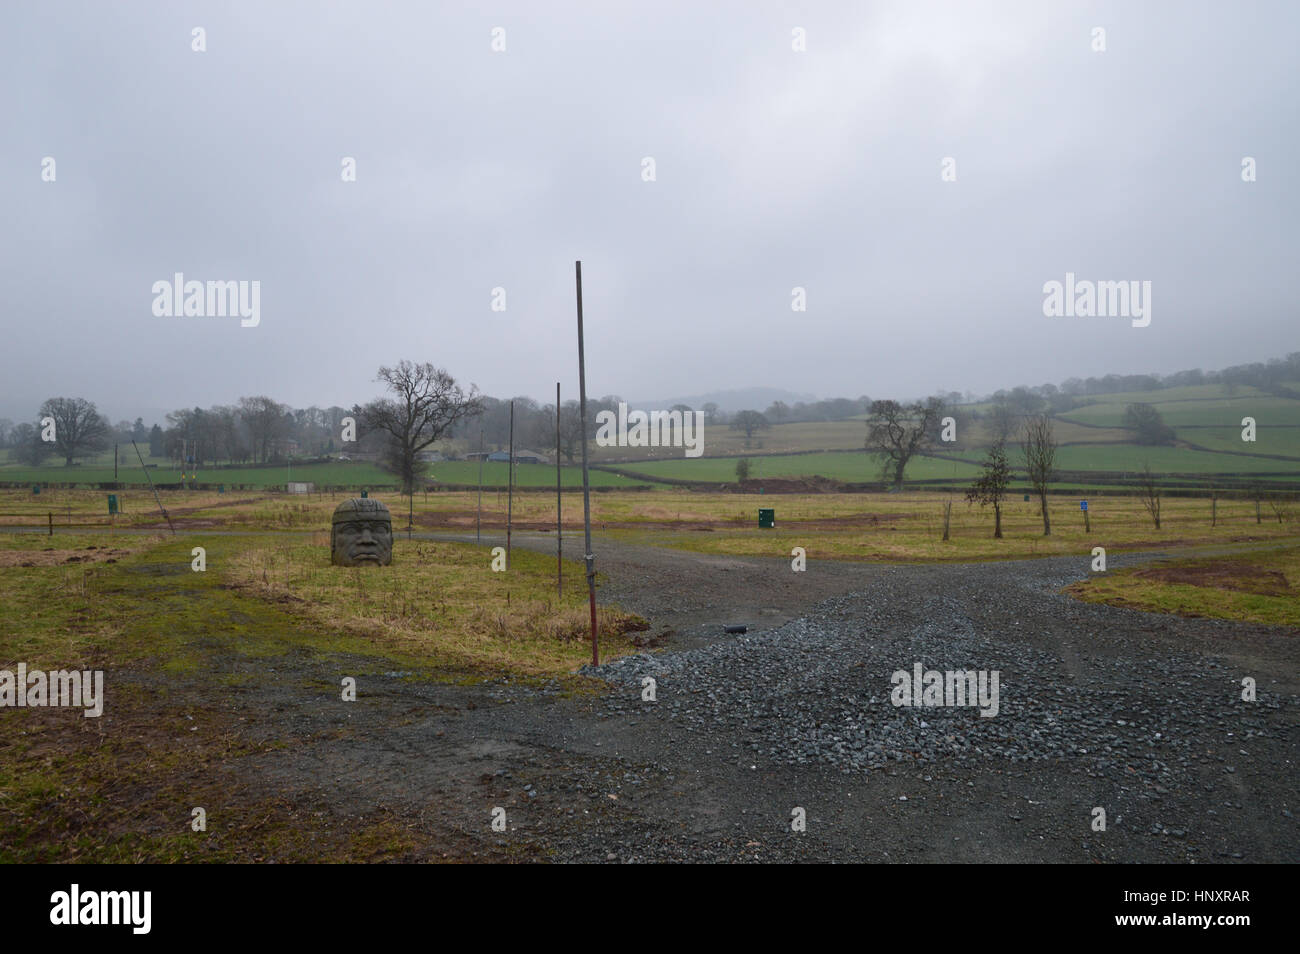 Hay Festival site during the winter, Powys, Wales - Stock Image